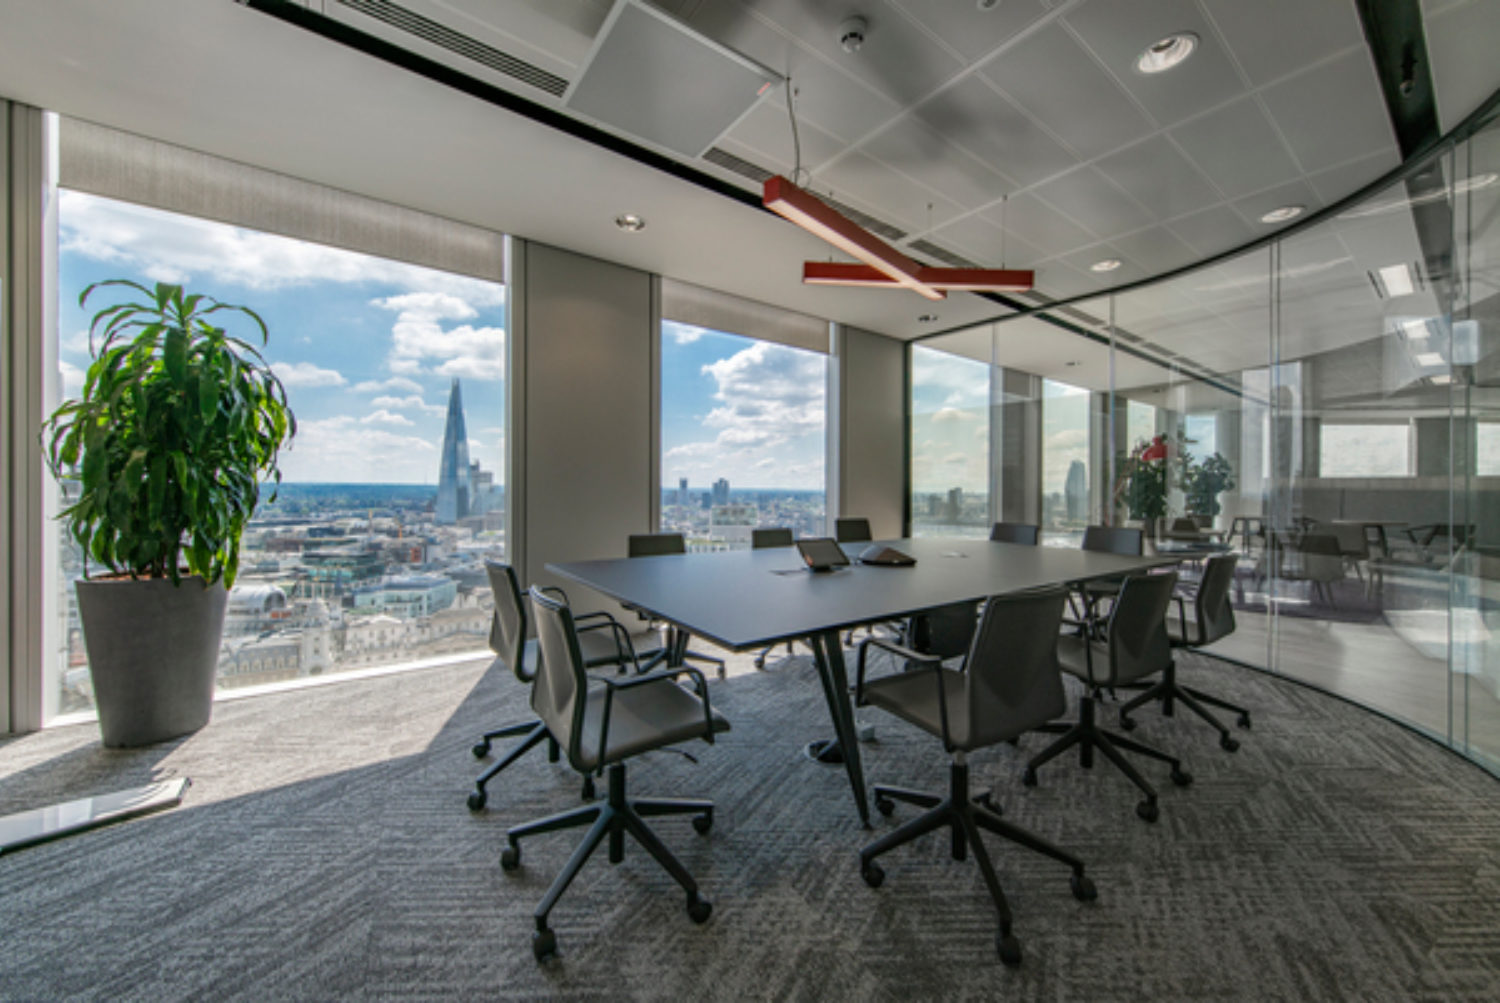 Equifax meeting space designed with views